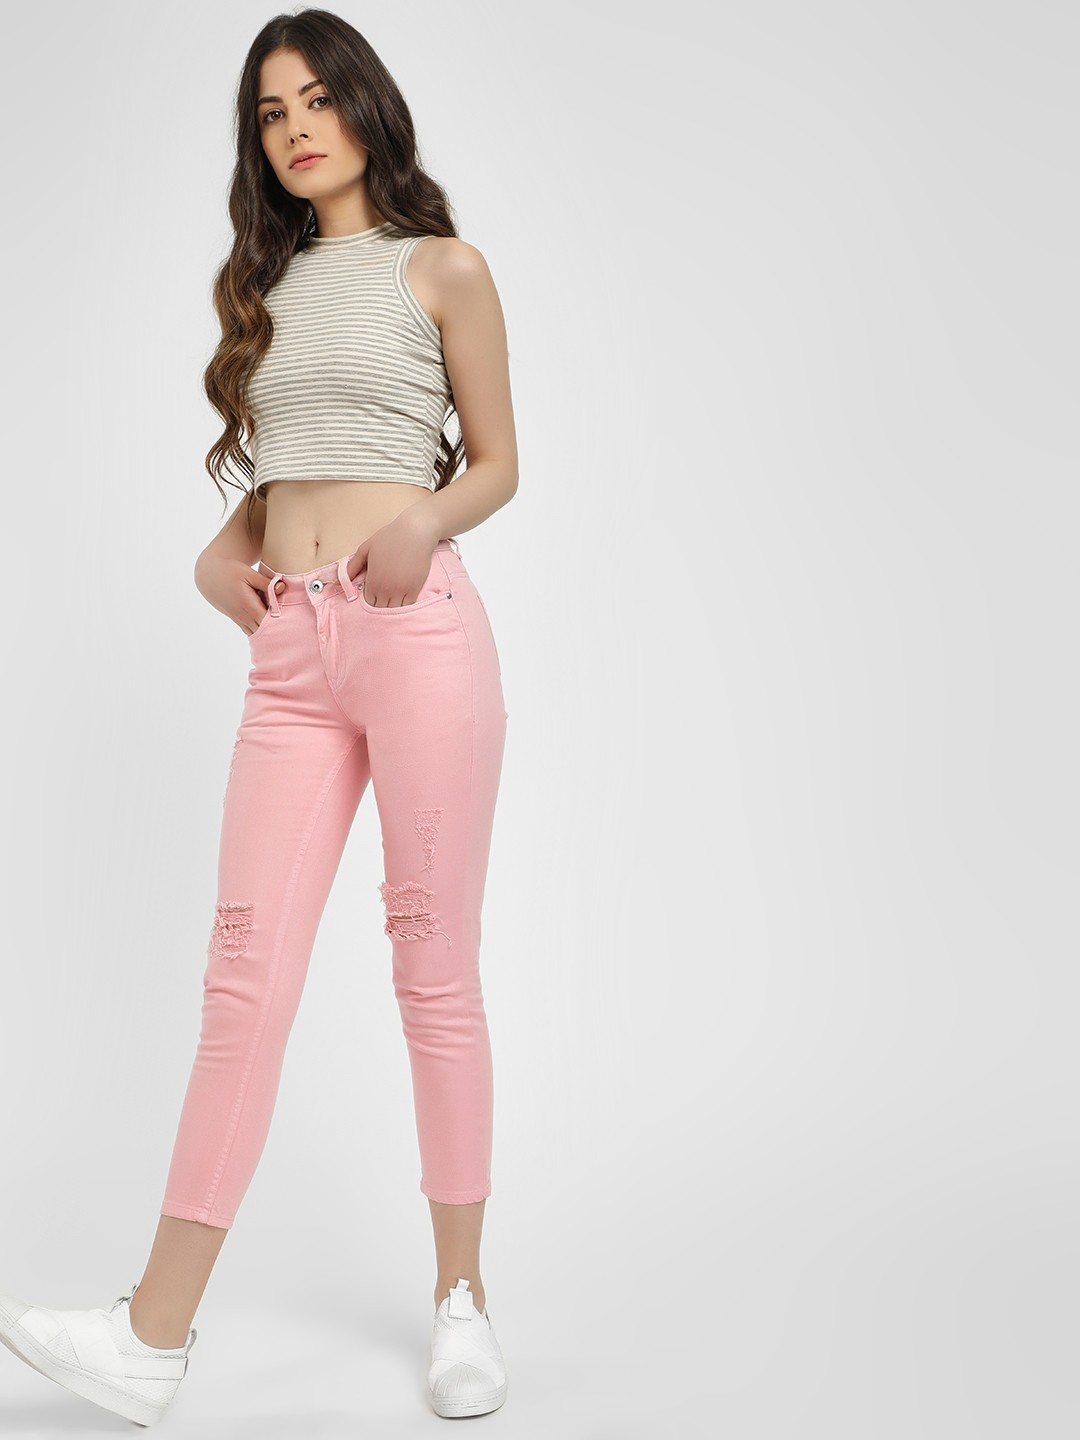 Blue Saint Pink Distressed Cropped Skinny Jeans 1